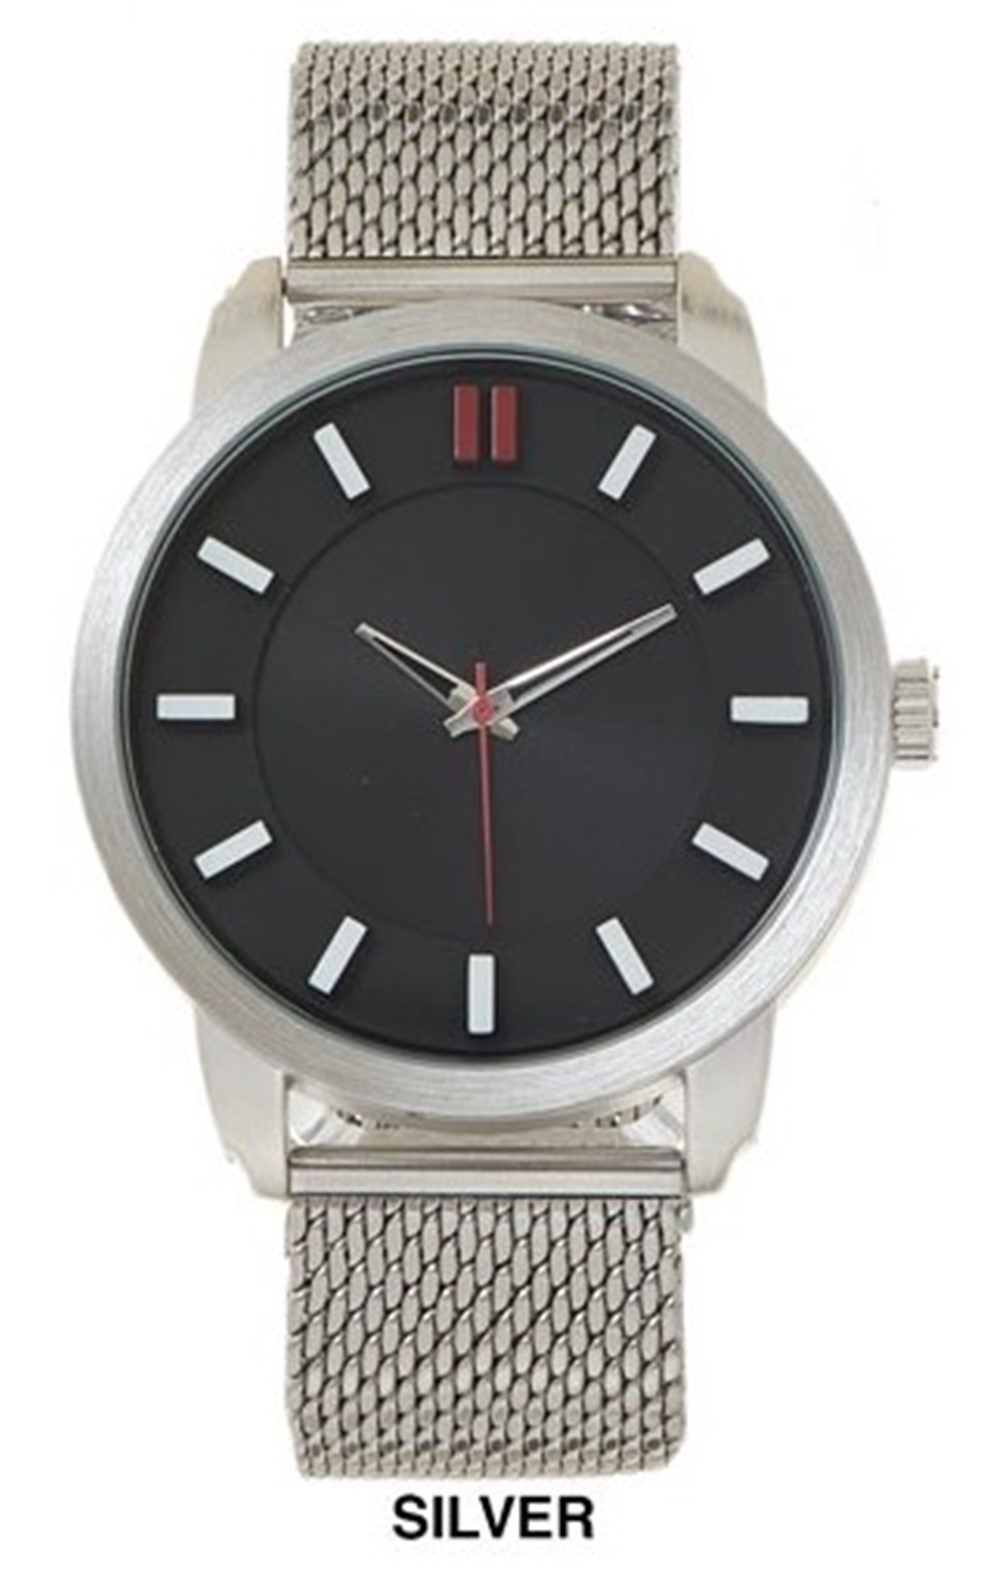 NEW Men's 50 mm Big Dial With Mesh Strap Band Watch